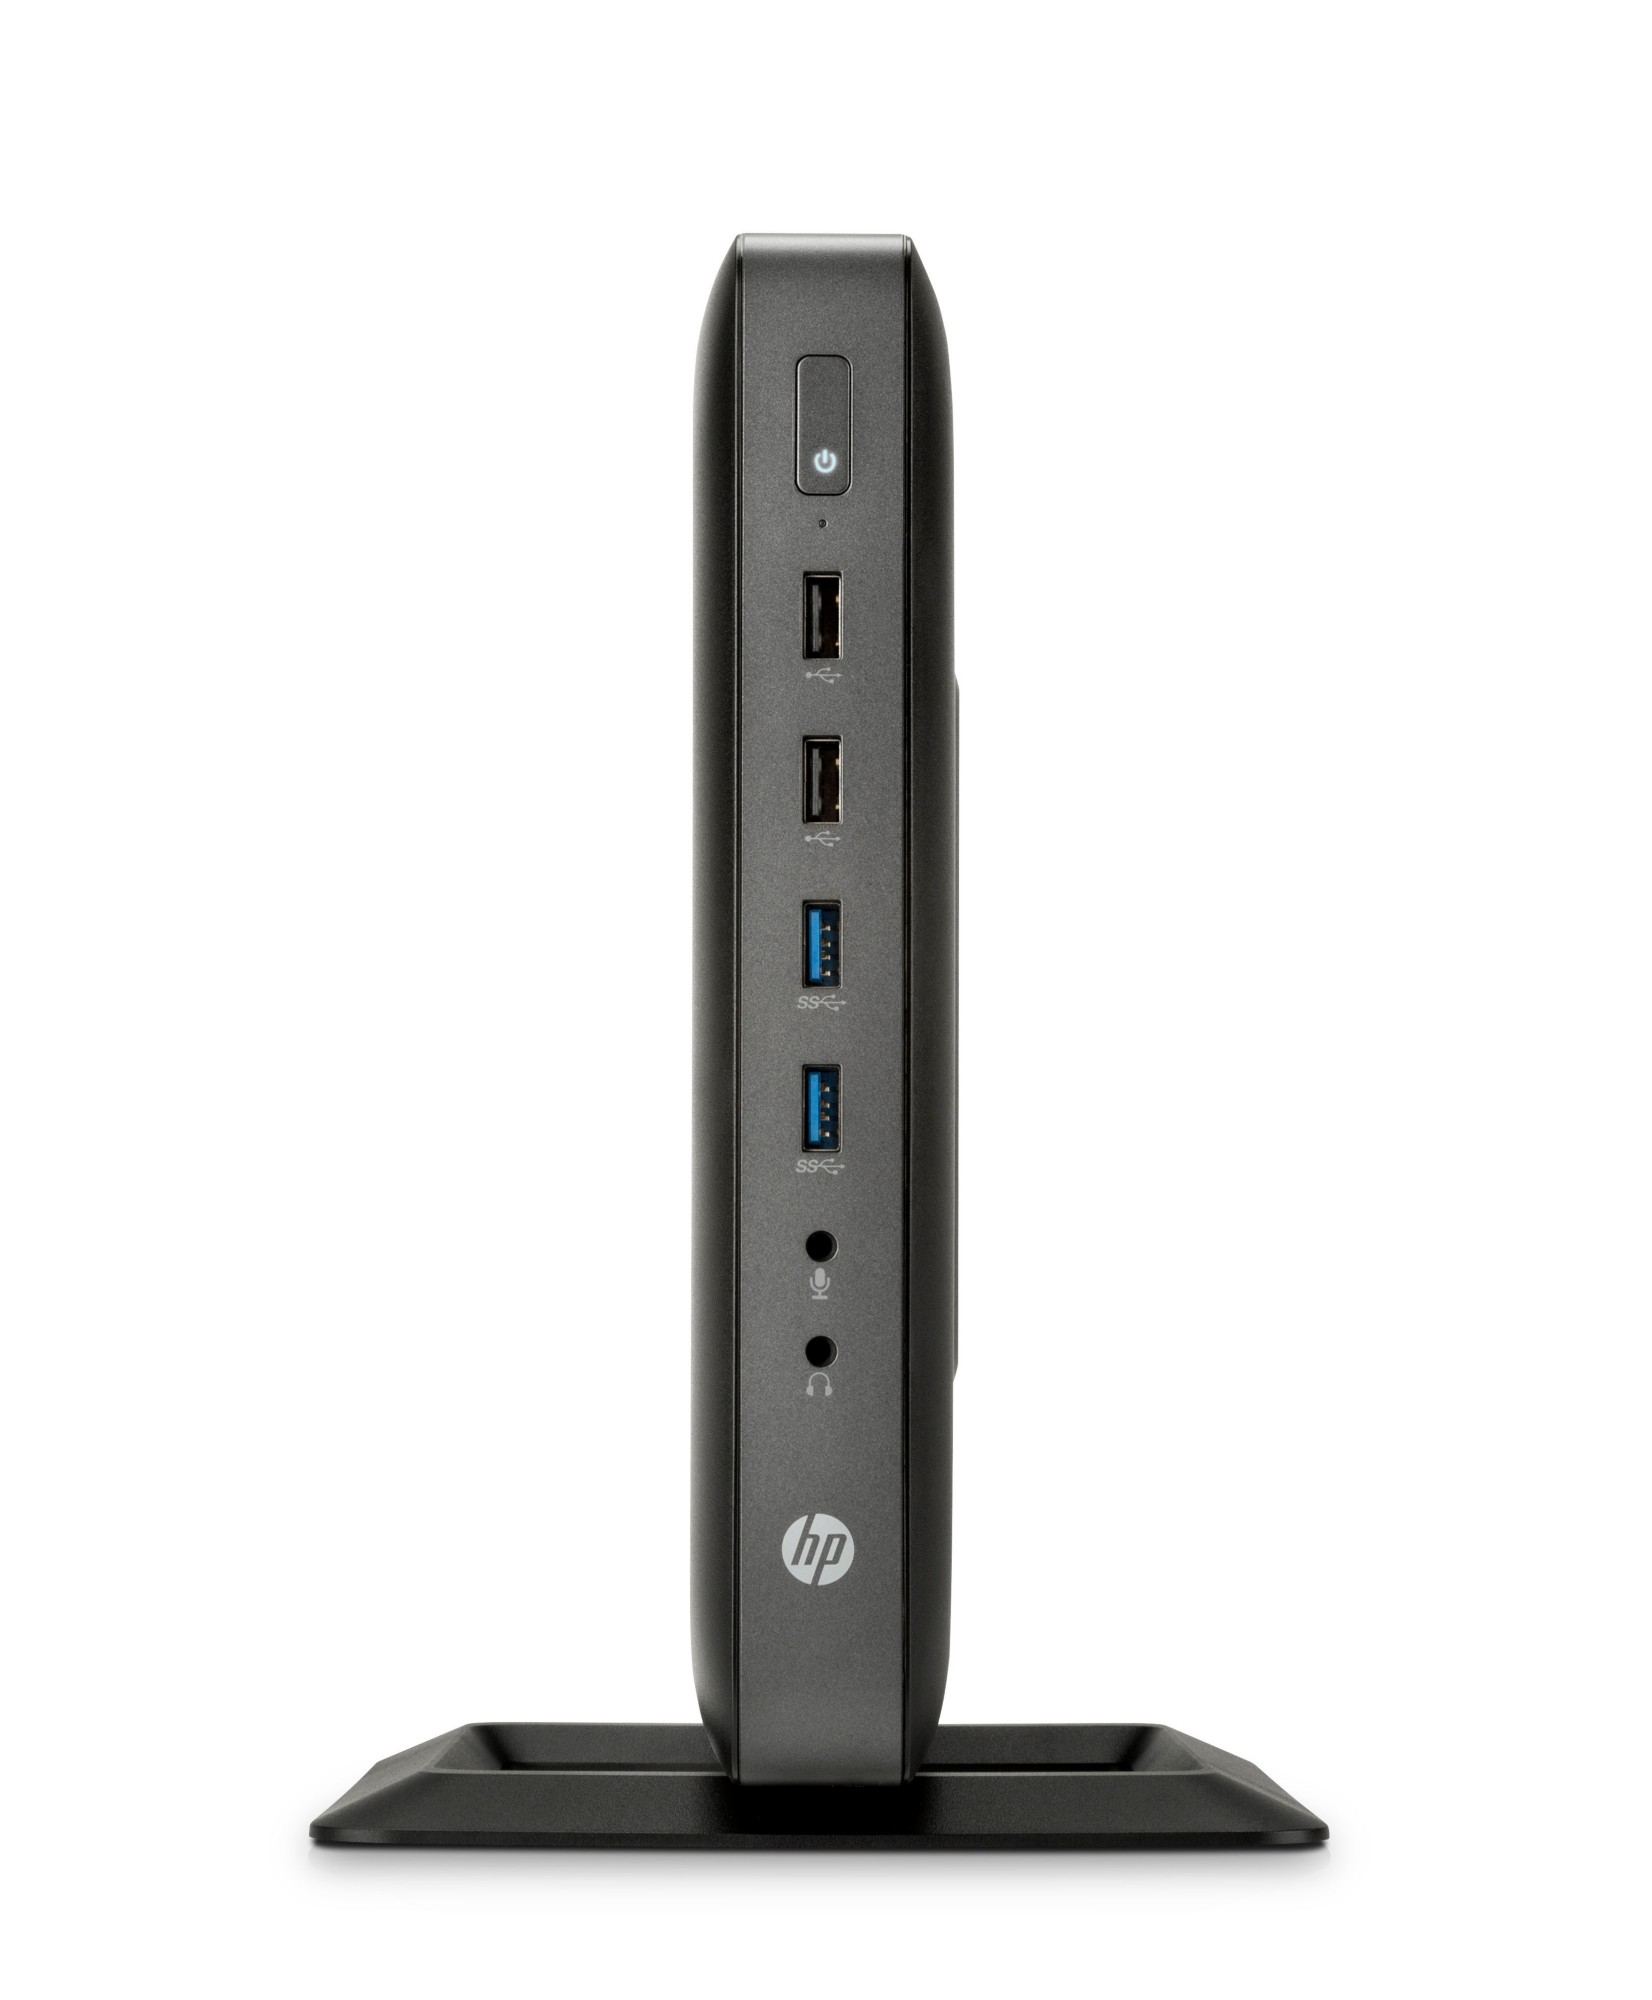 Cheap Thin Clients | Technoworld Deals